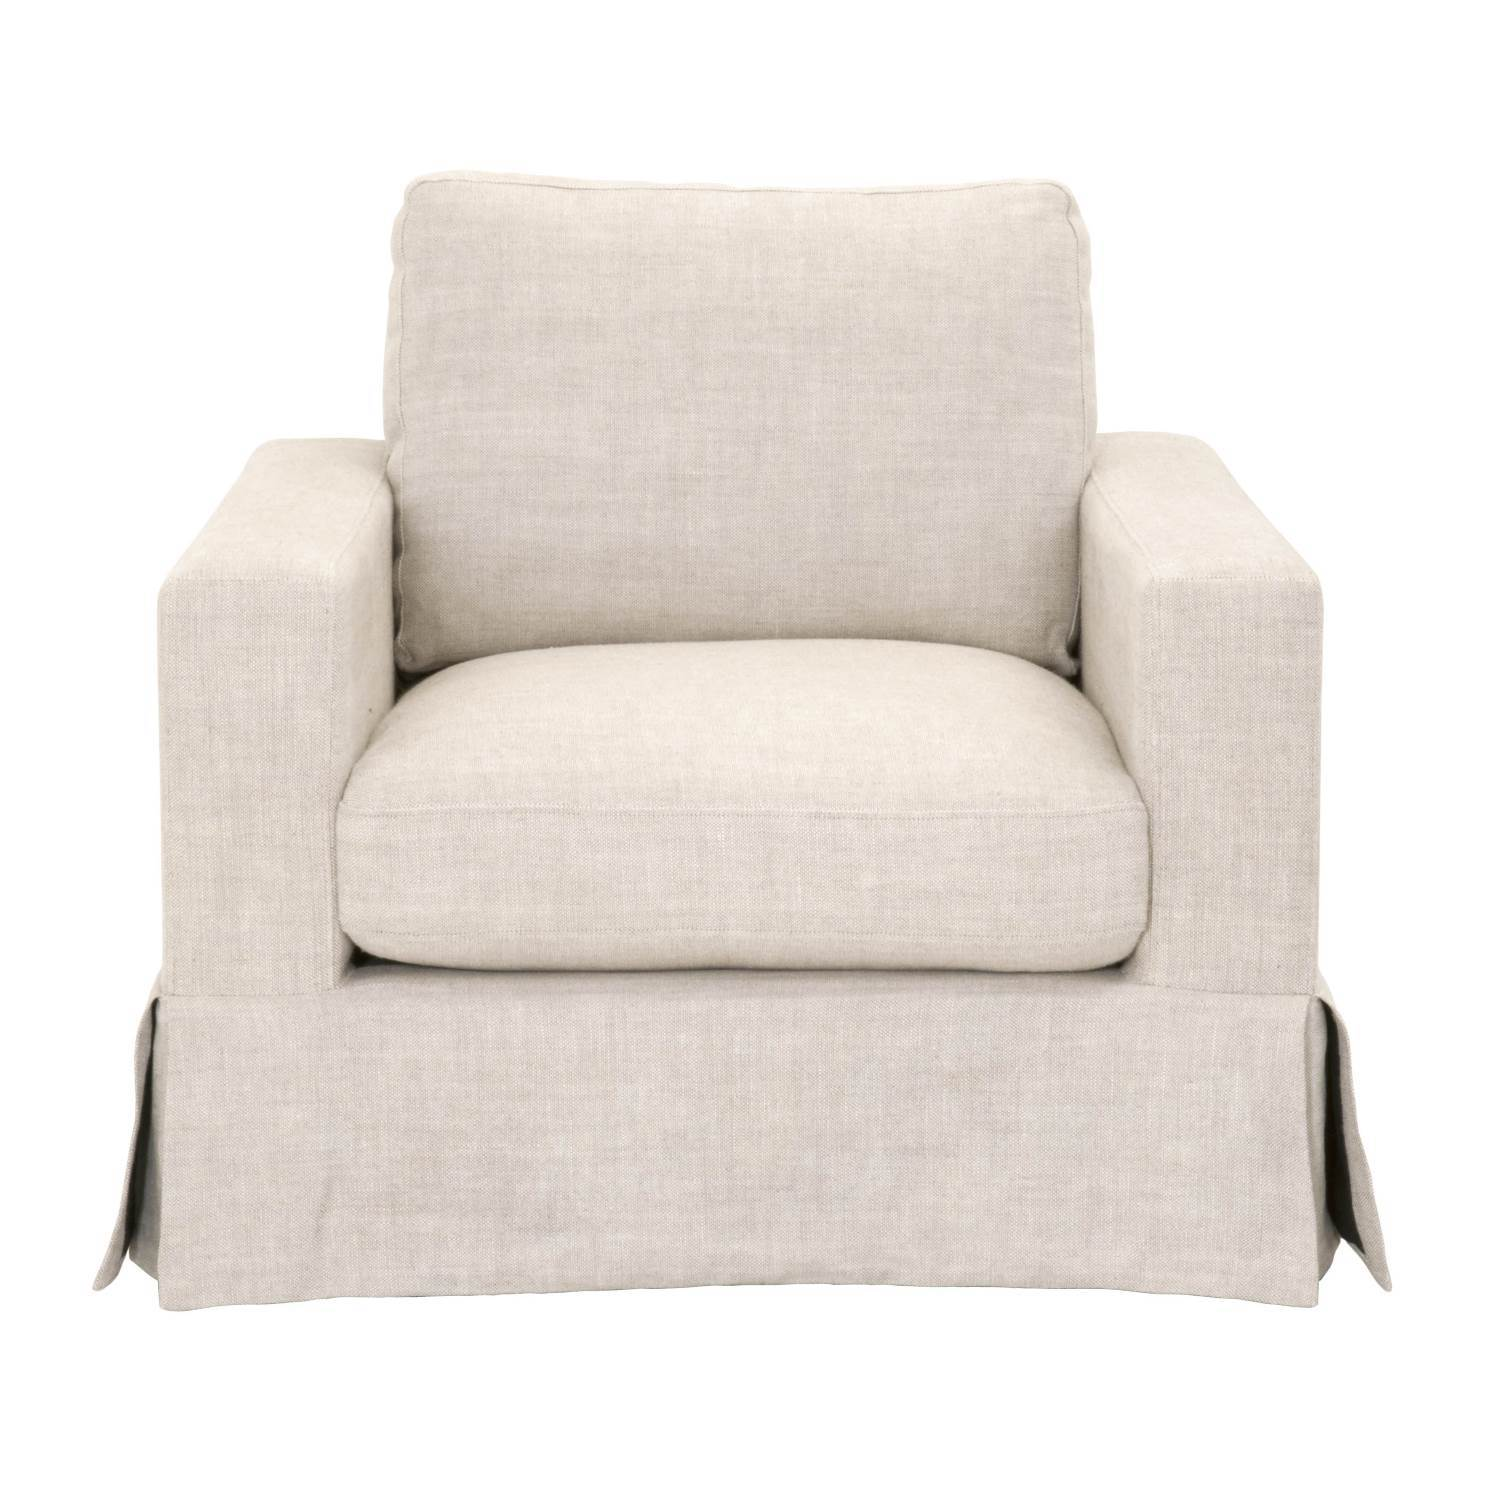 Maxwell Sofa Chair in Bisque French Linen